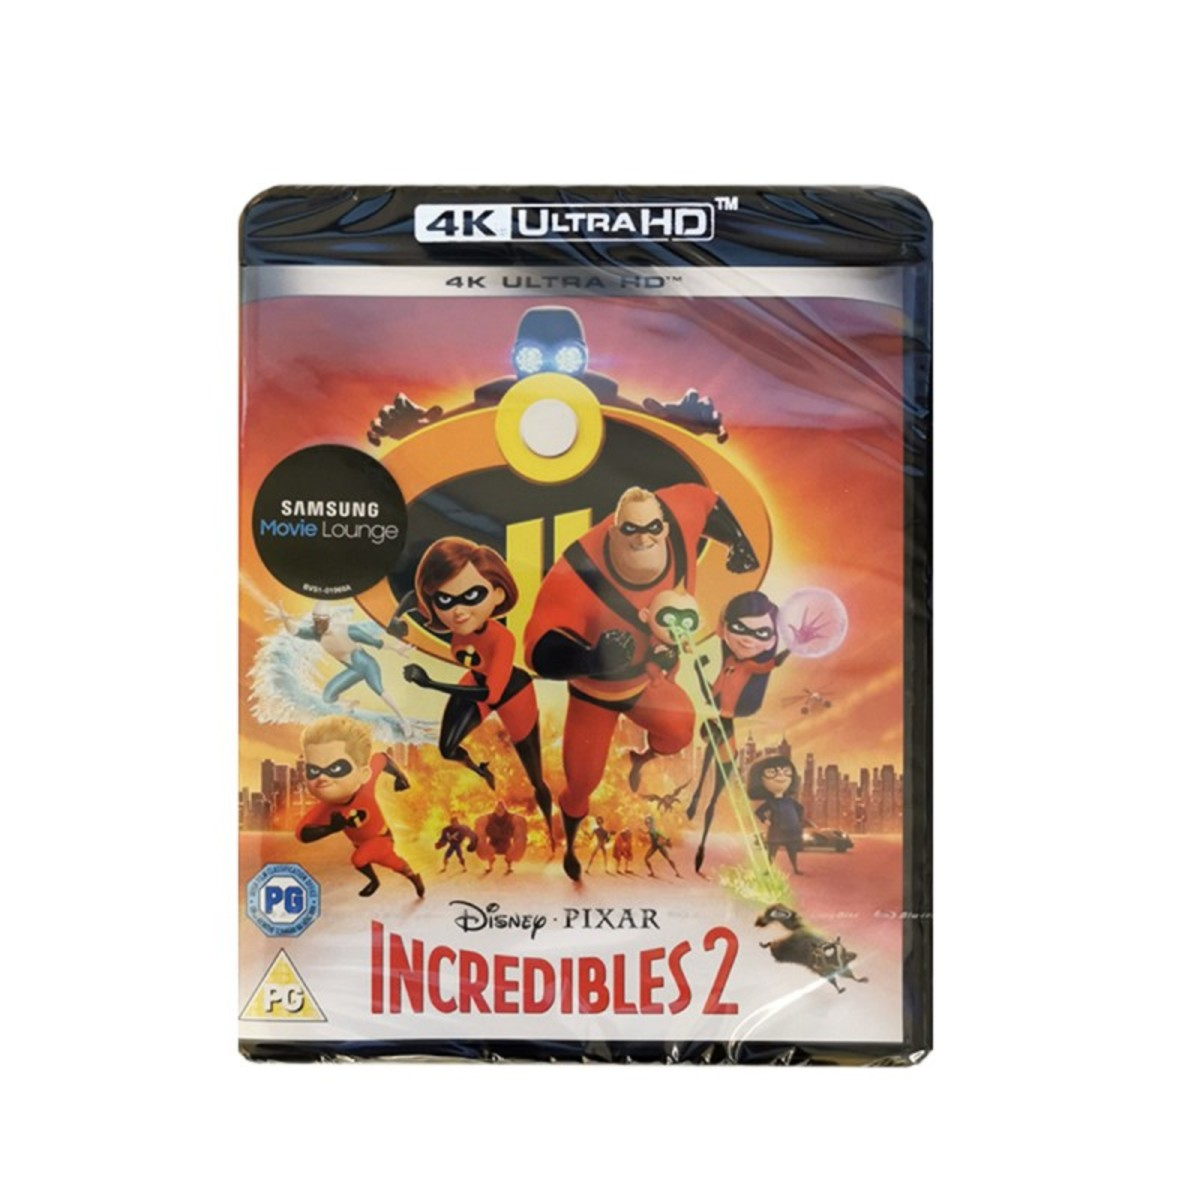 Image of 4K Incredibles 2 Blu-ray Disc